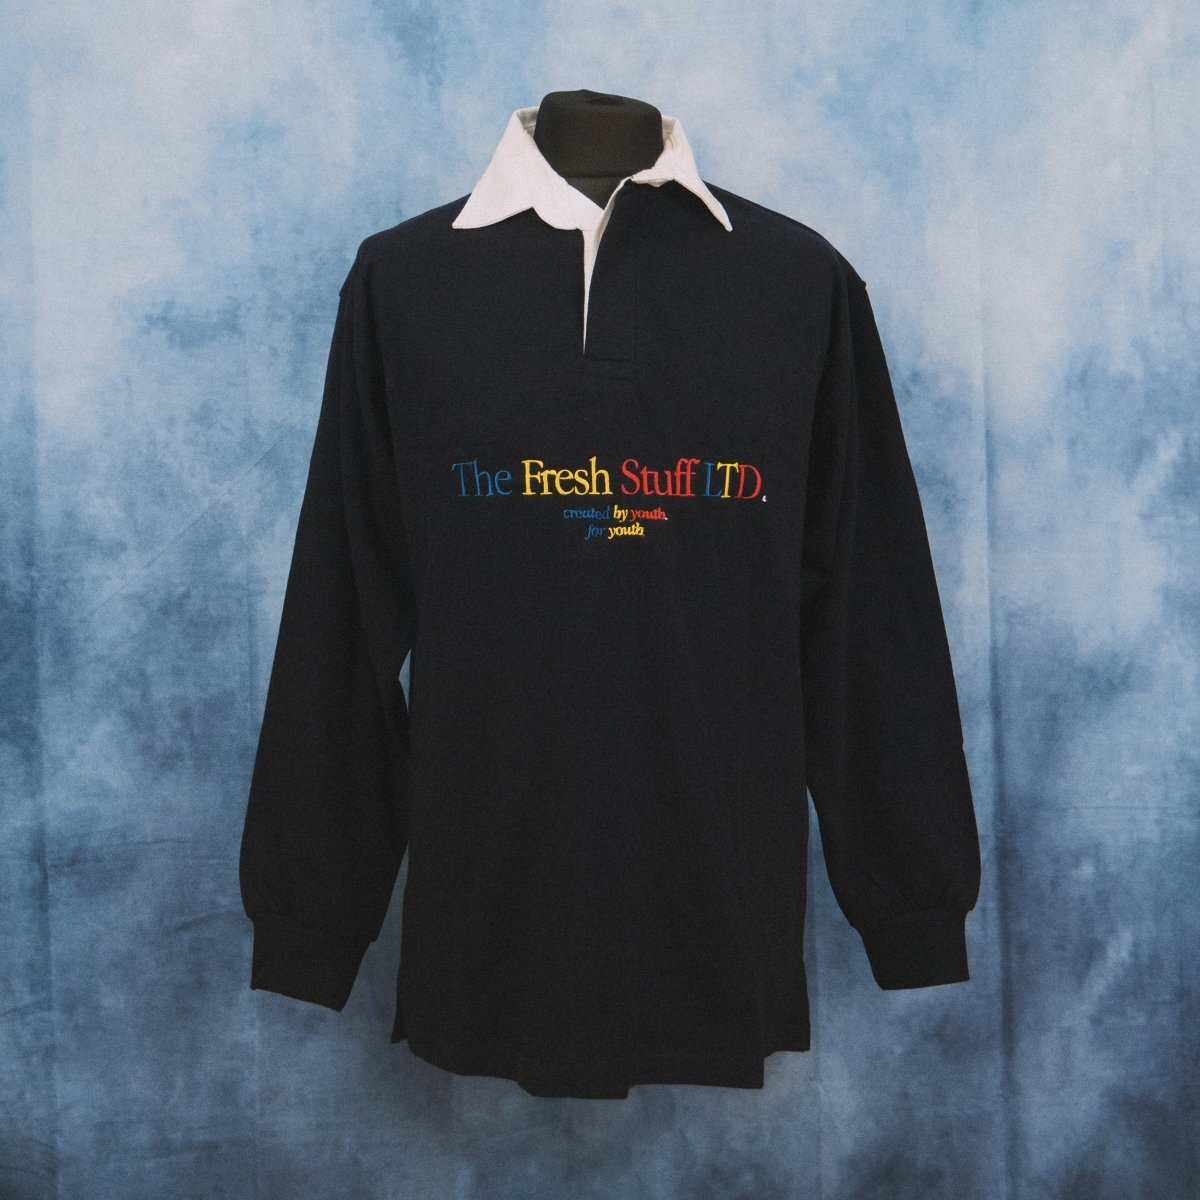 The Fresh Stuff LTD Unisex Embroidered Navy Rugby Shirt